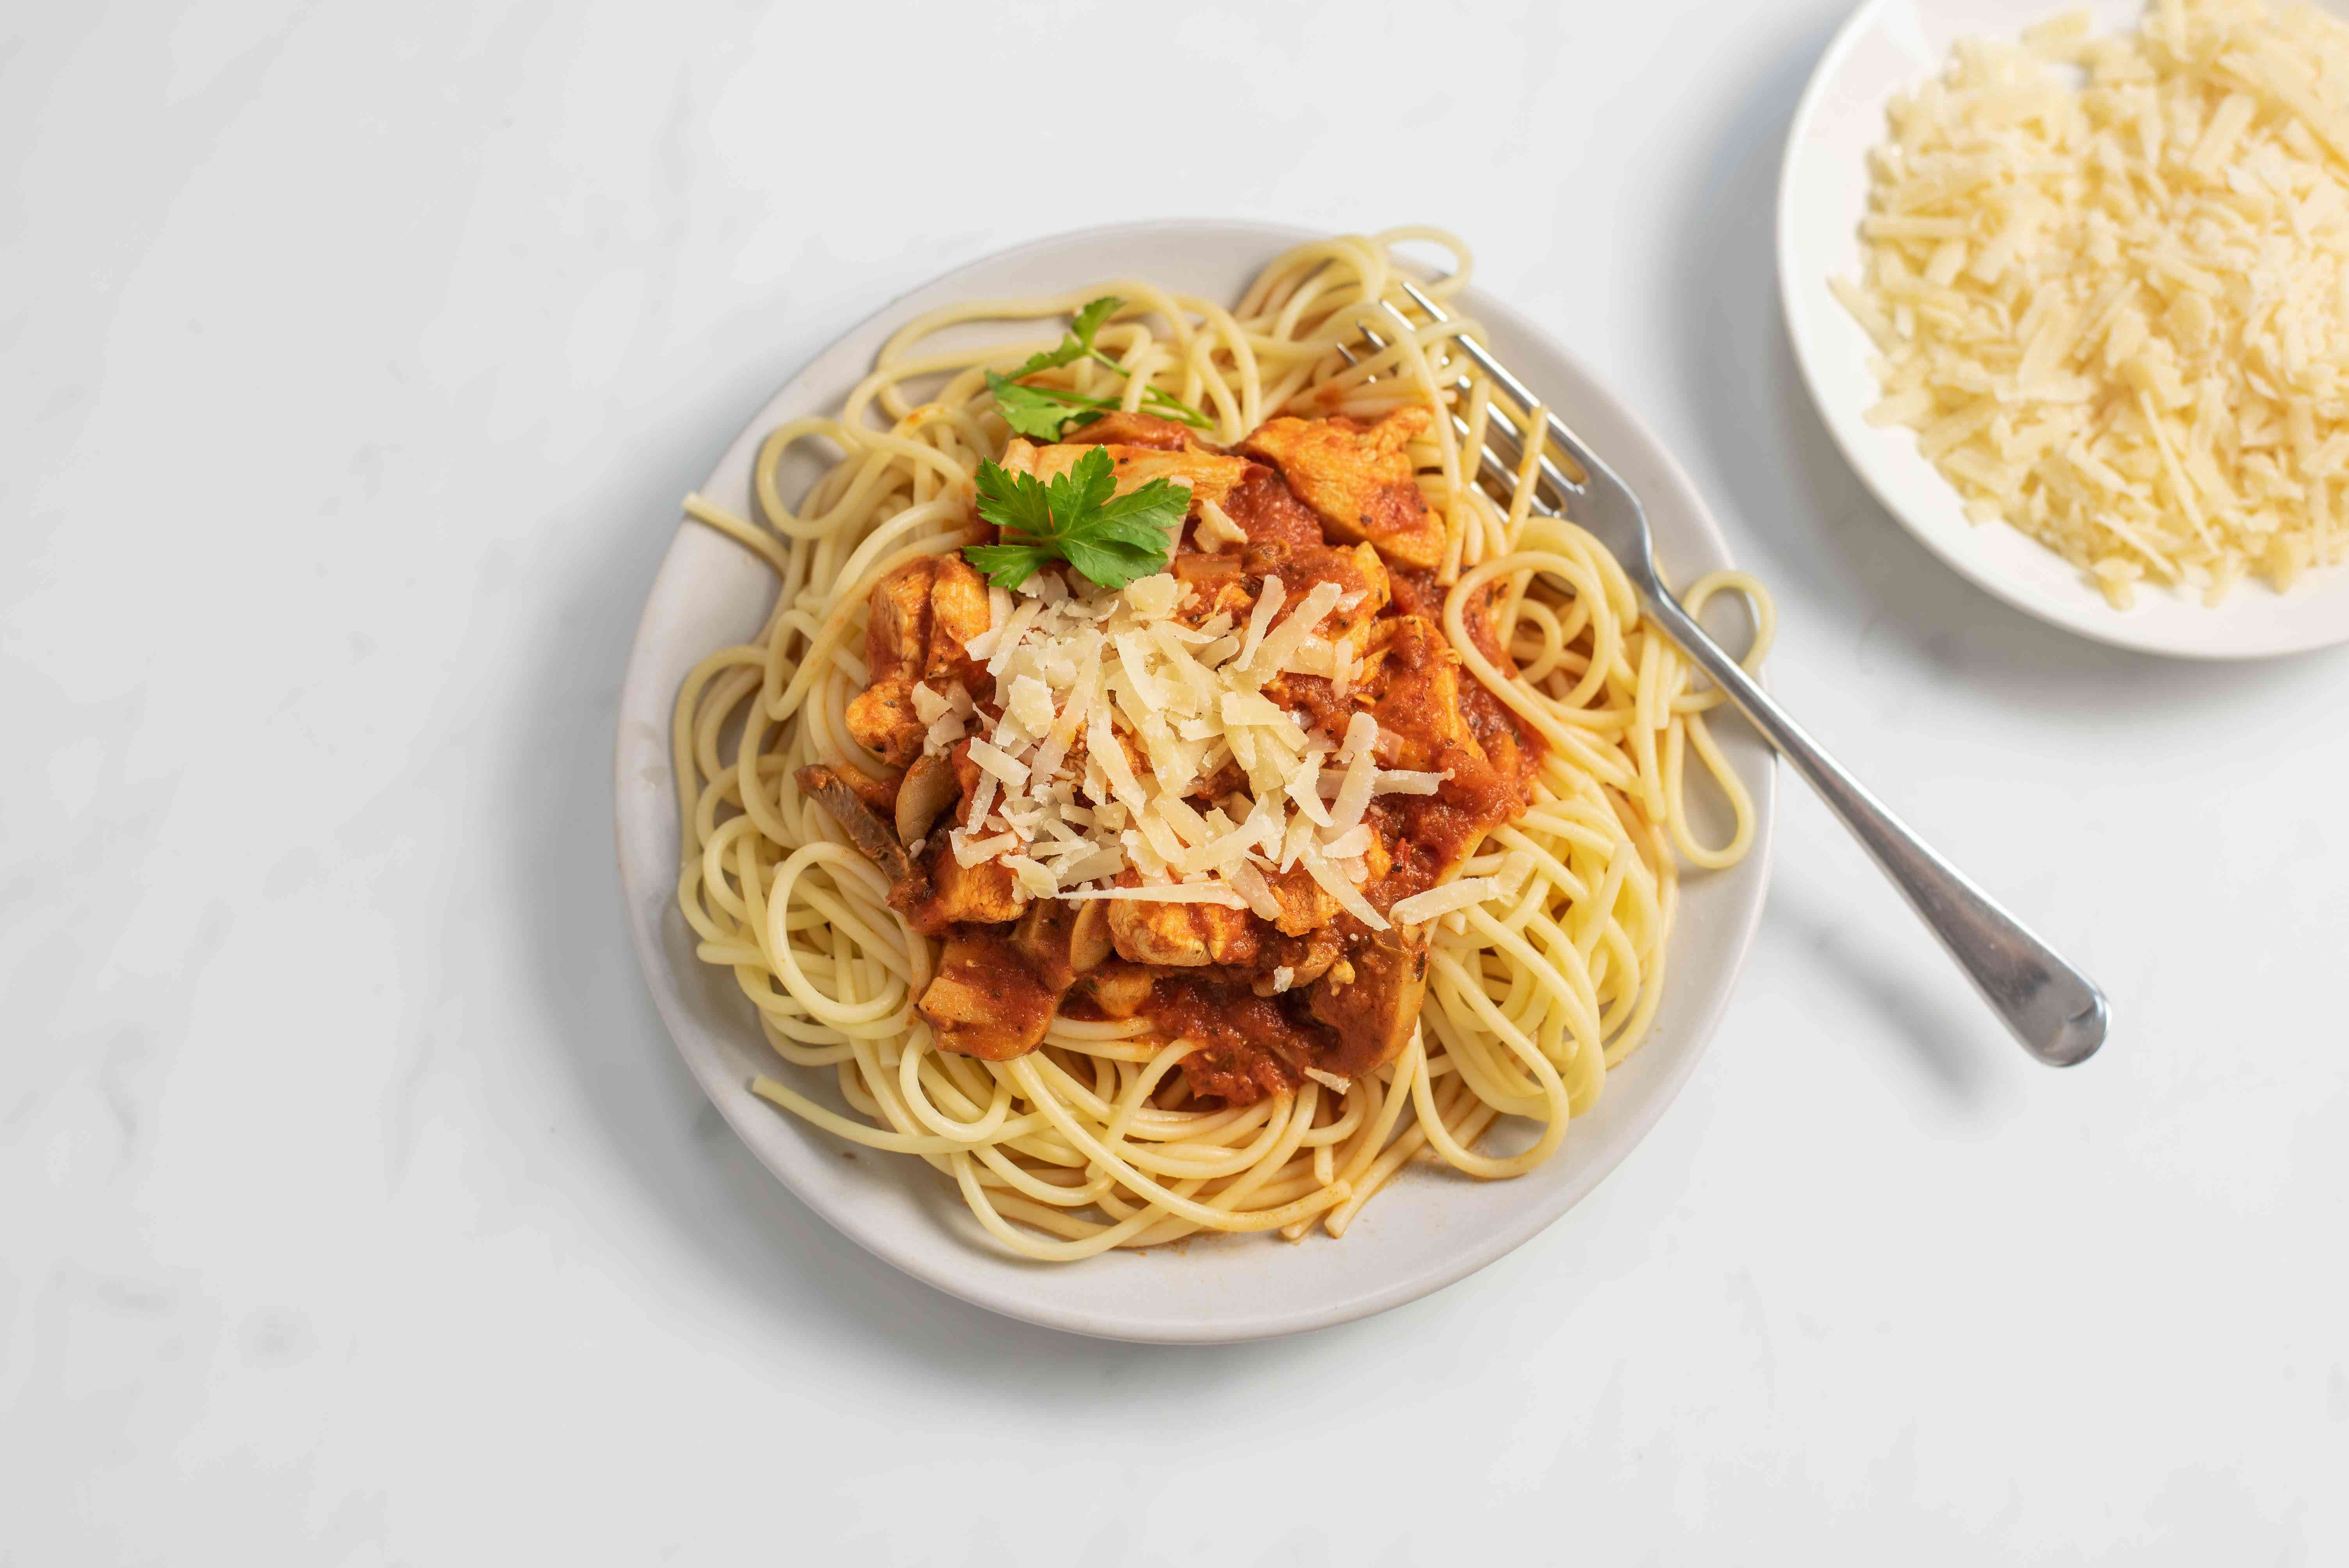 Plated chicken spaghetti with parmesan